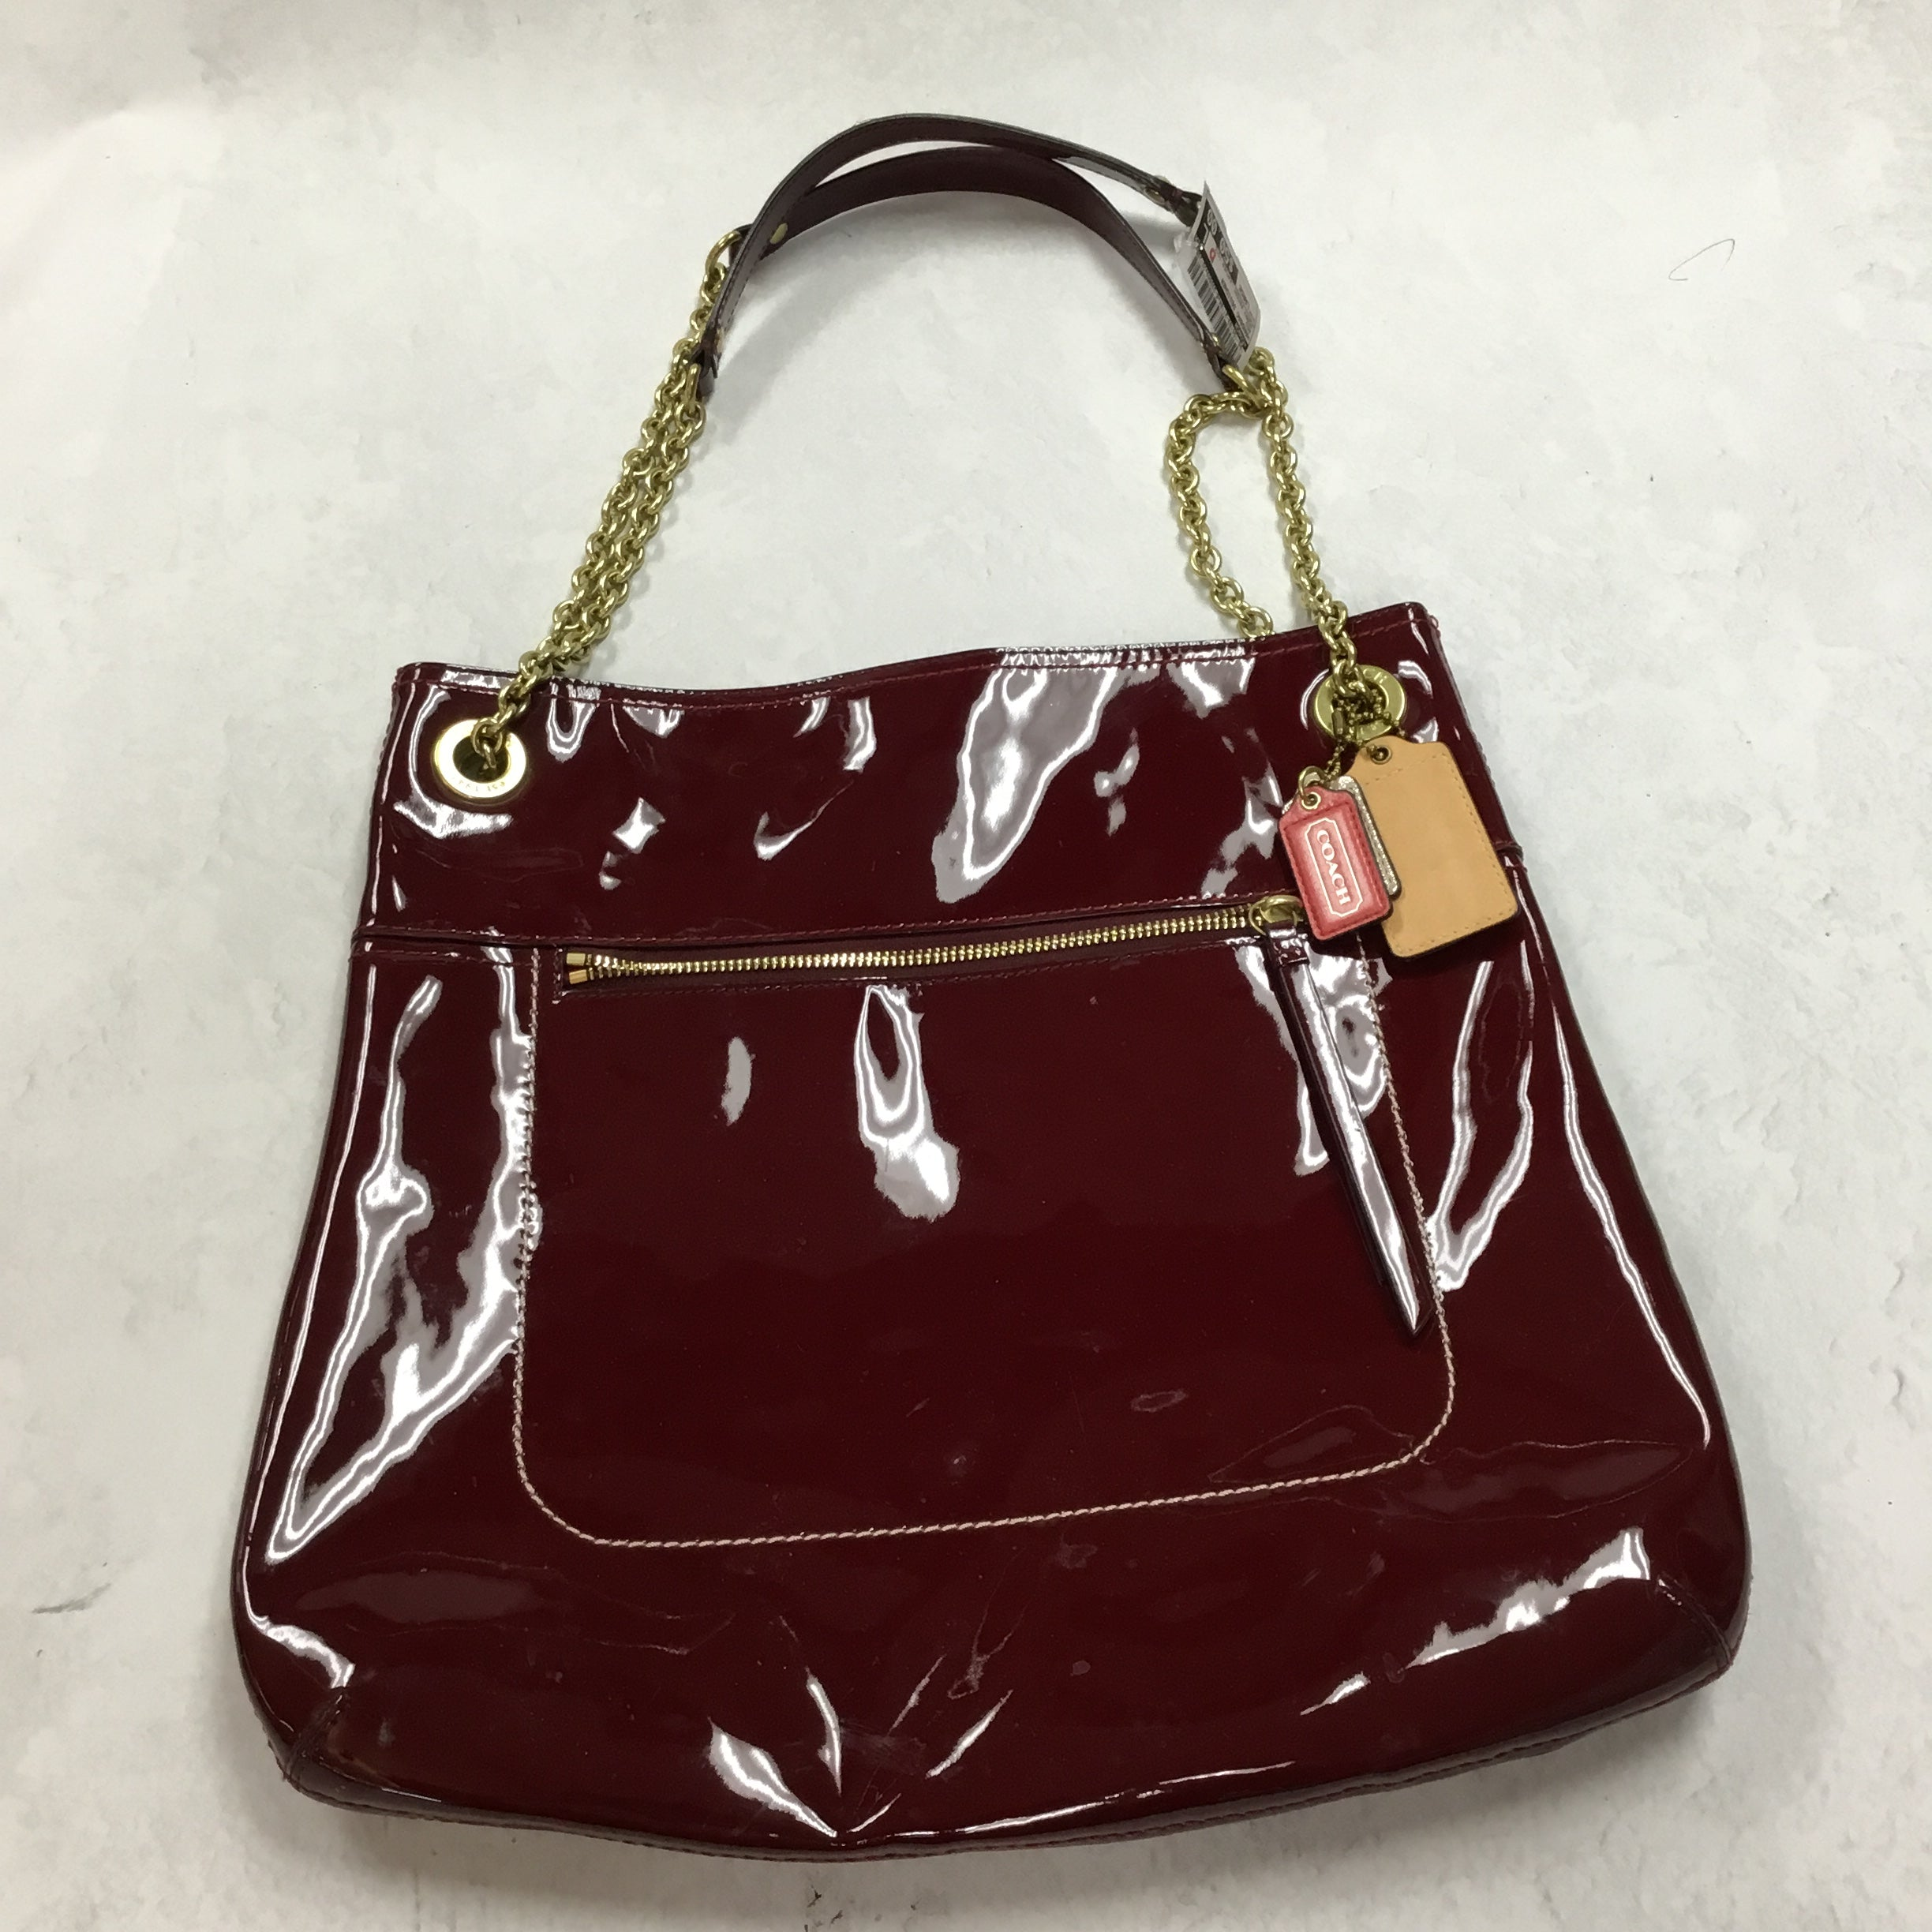 Primary Photo - BRAND: COACH <BR>STYLE: HANDBAG DESIGNER <BR>COLOR: RED <BR>SIZE: LARGE <BR>OTHER INFO: POPPY PATENT LEATHER TOTE <BR>SKU: 194-194183-21184